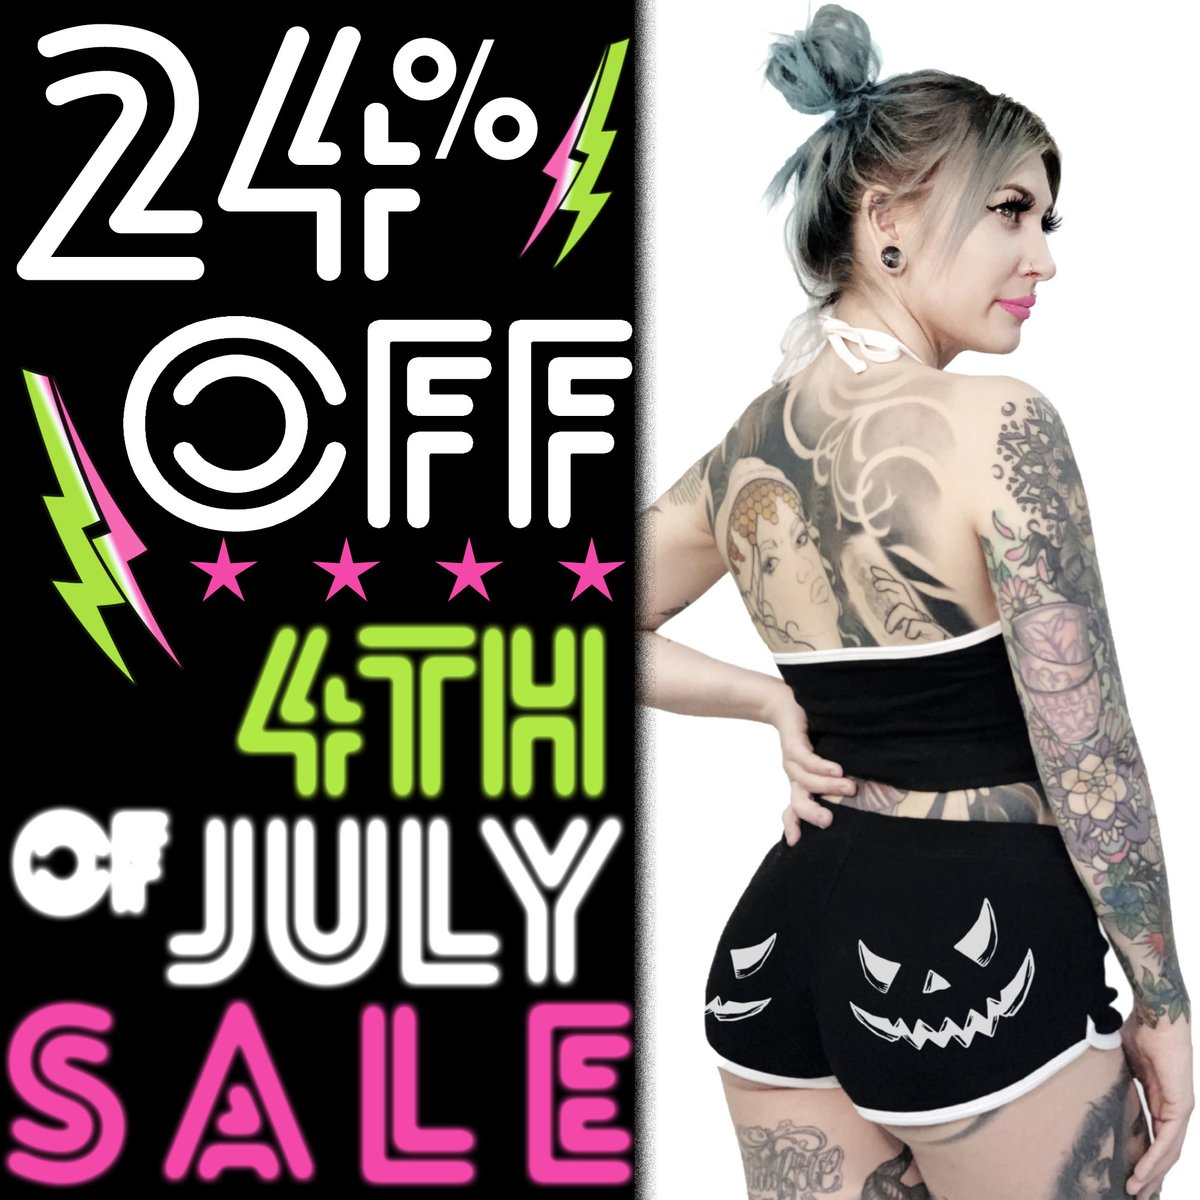 4% OFF SITE-WIDE ★ 4TH OF JULY SALE ★ ★ 24% OFF SITE-WIDE ★ NO CODE NEEDED ★ ENDS MONDAY 11 AM EST ★ SOME EXCLUSIONS APPLY ★ ★ http://TOOFASTONLINE.COM ★ #gothgoth #gothaf #altfashion #gothfashion #gothclothing #alternativeclothing #alternativefashion pic.twitter.com/XbmB5TyxLo